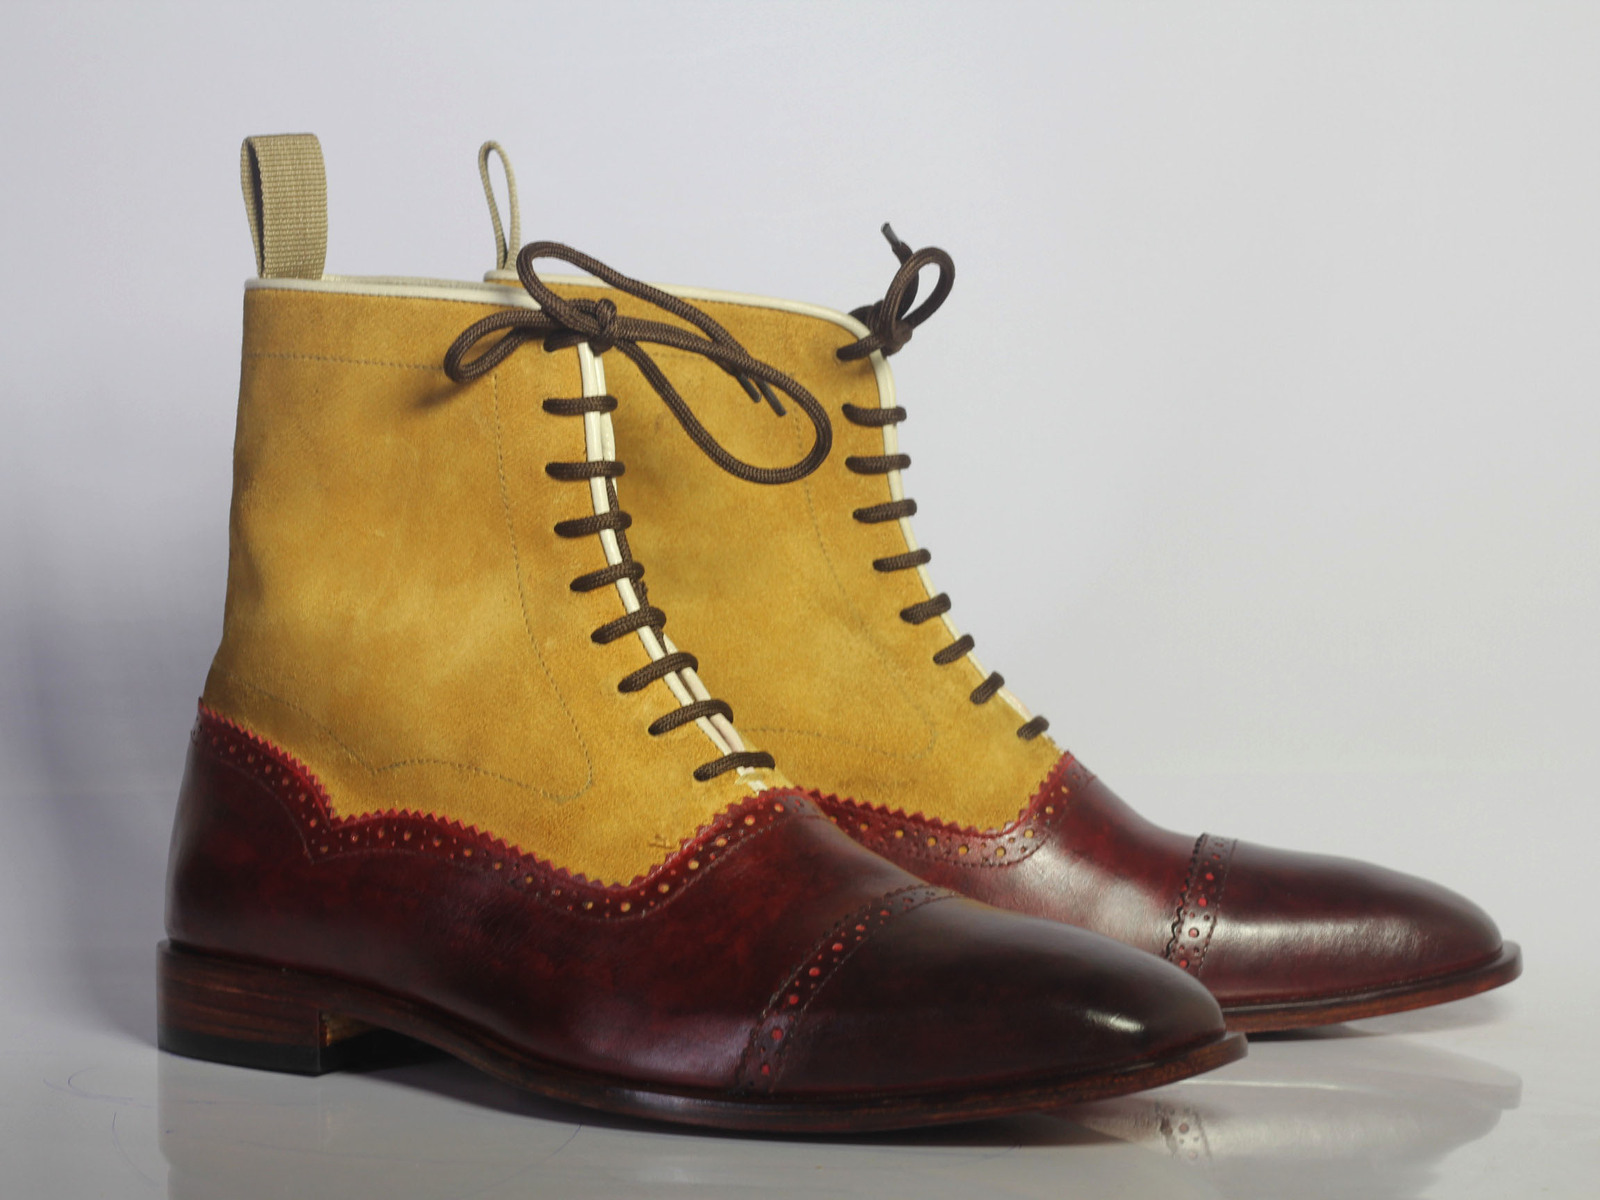 Handmade Men's Burgundy & Tan High Ankle Lace Up Leather & Suede Boots